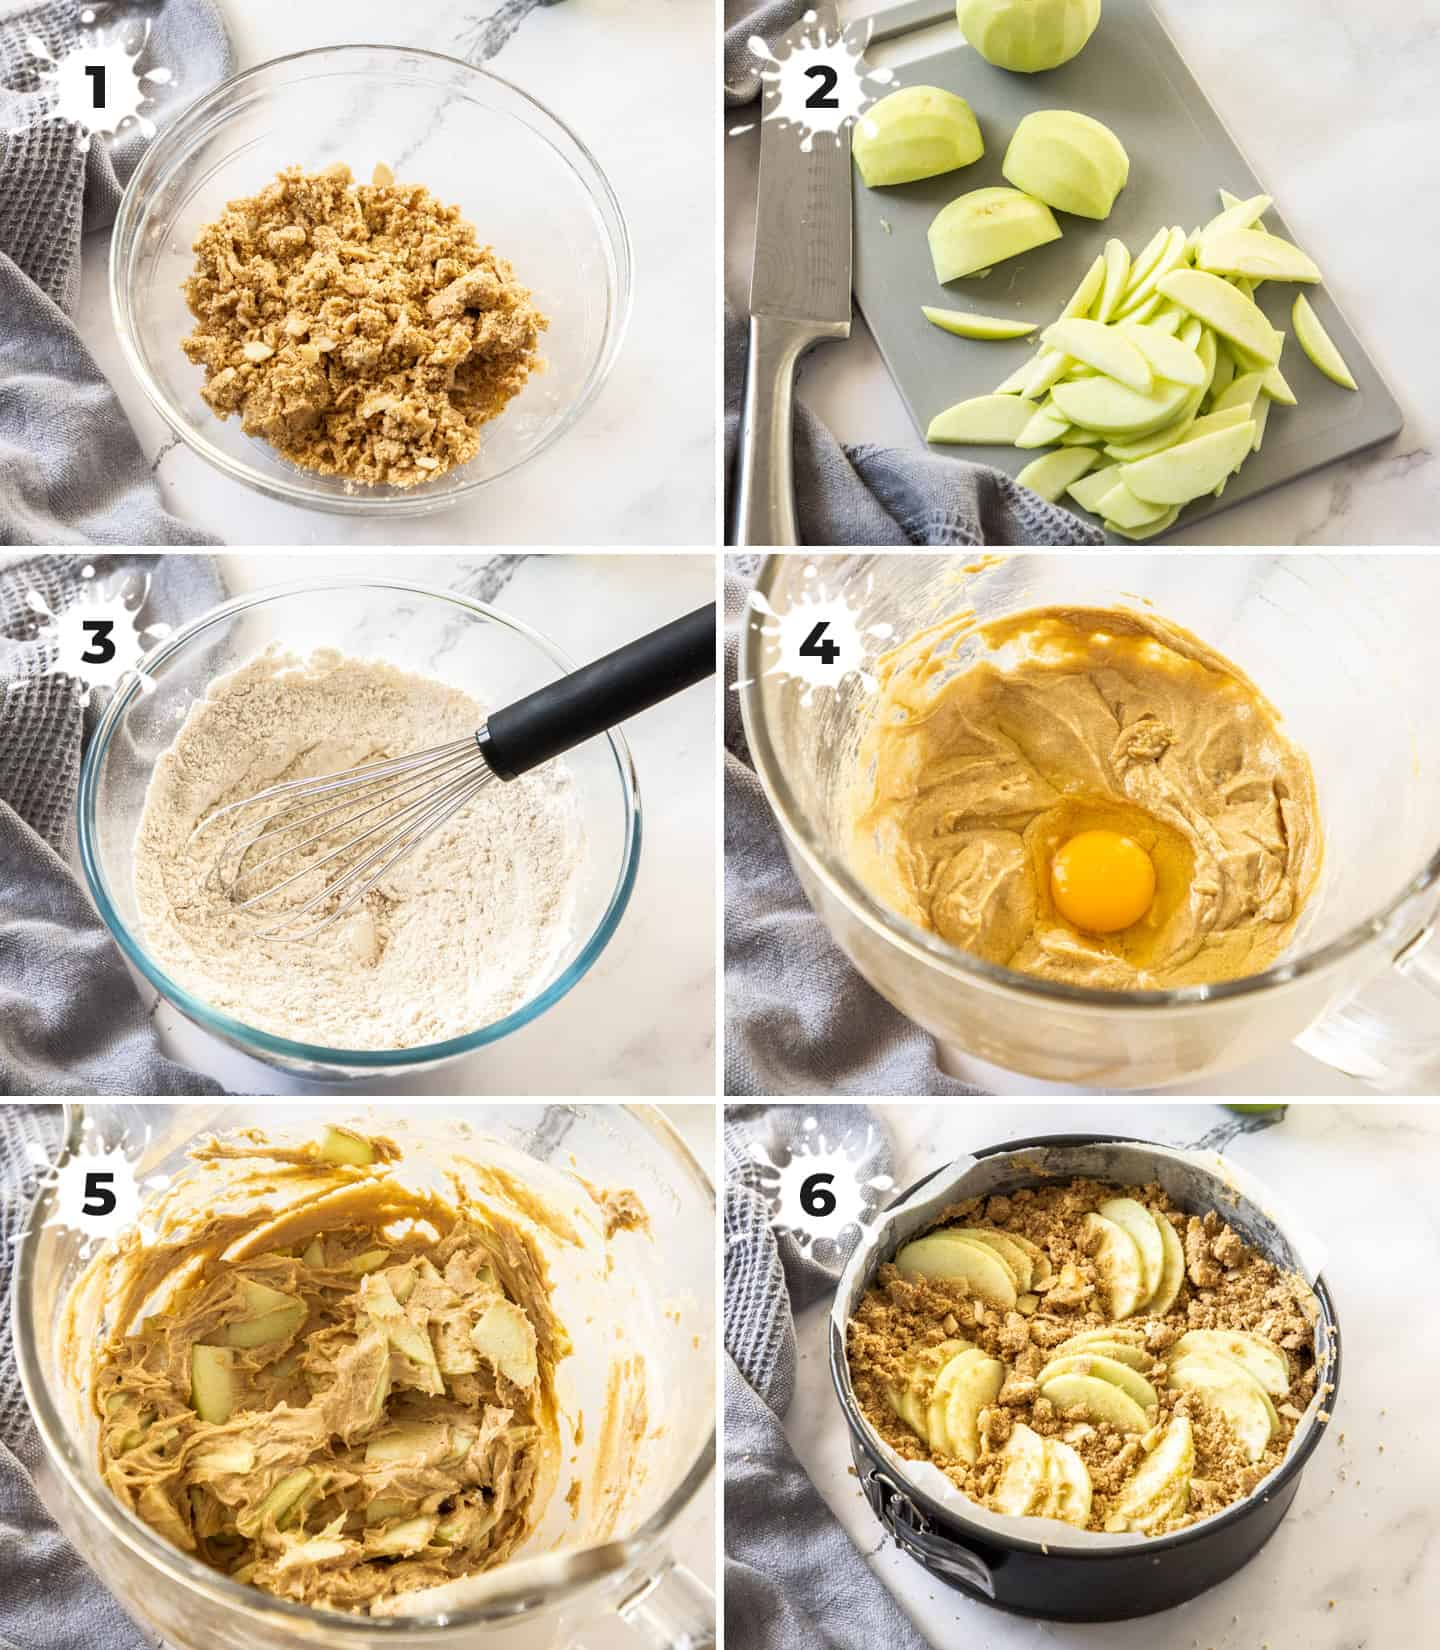 A collage of 6 images showing how to make the cake.